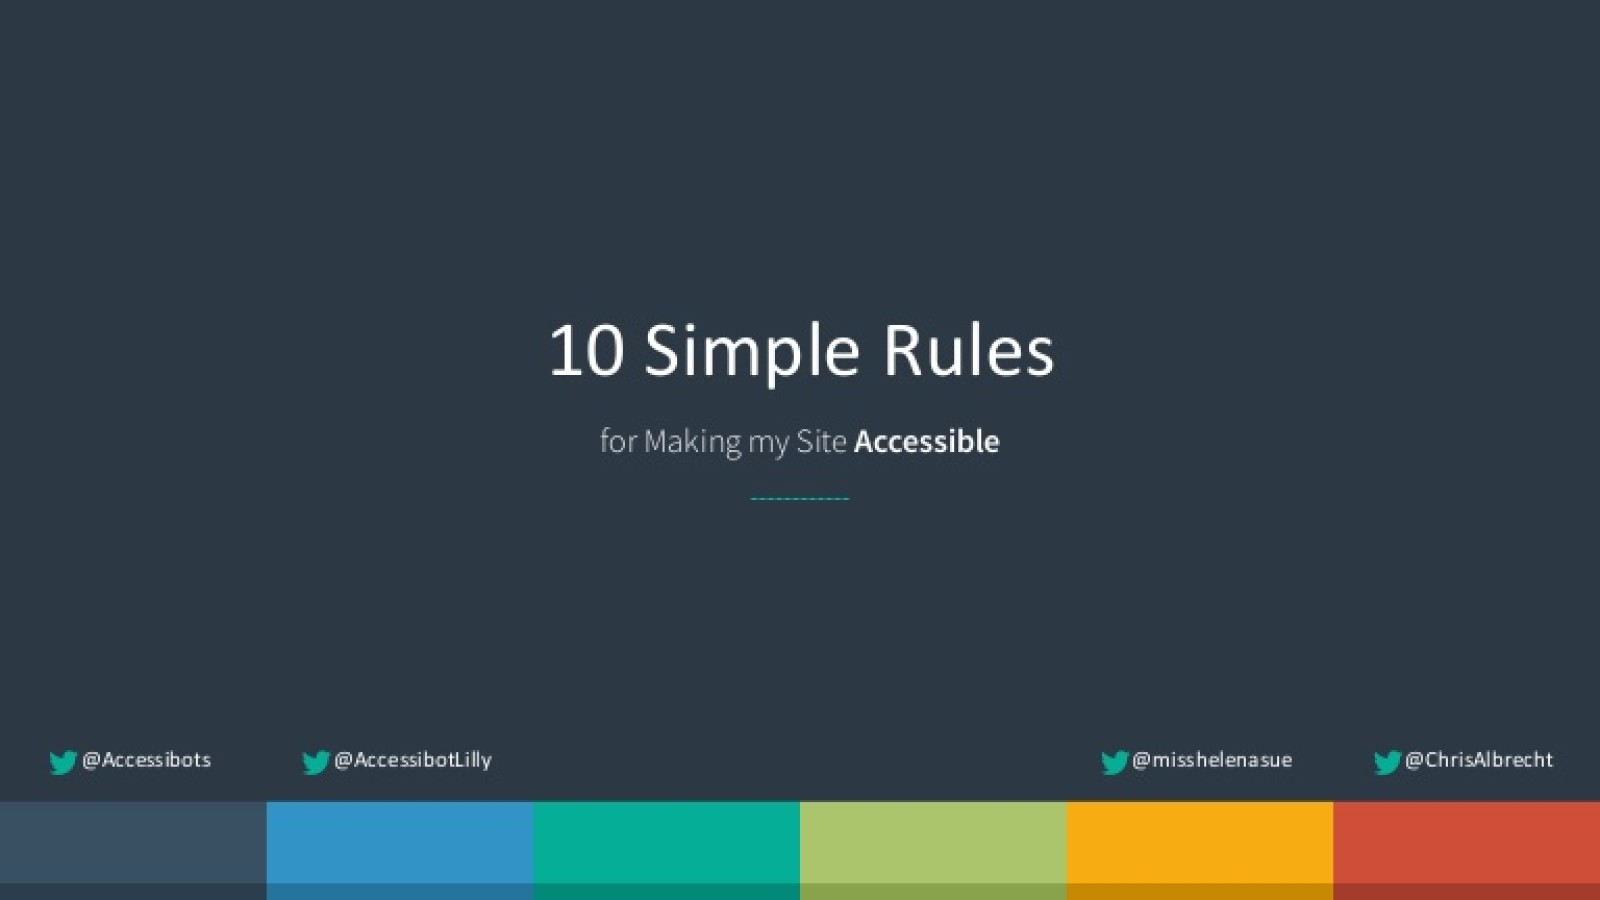 10 Simple Rules for Making My Site Accessible